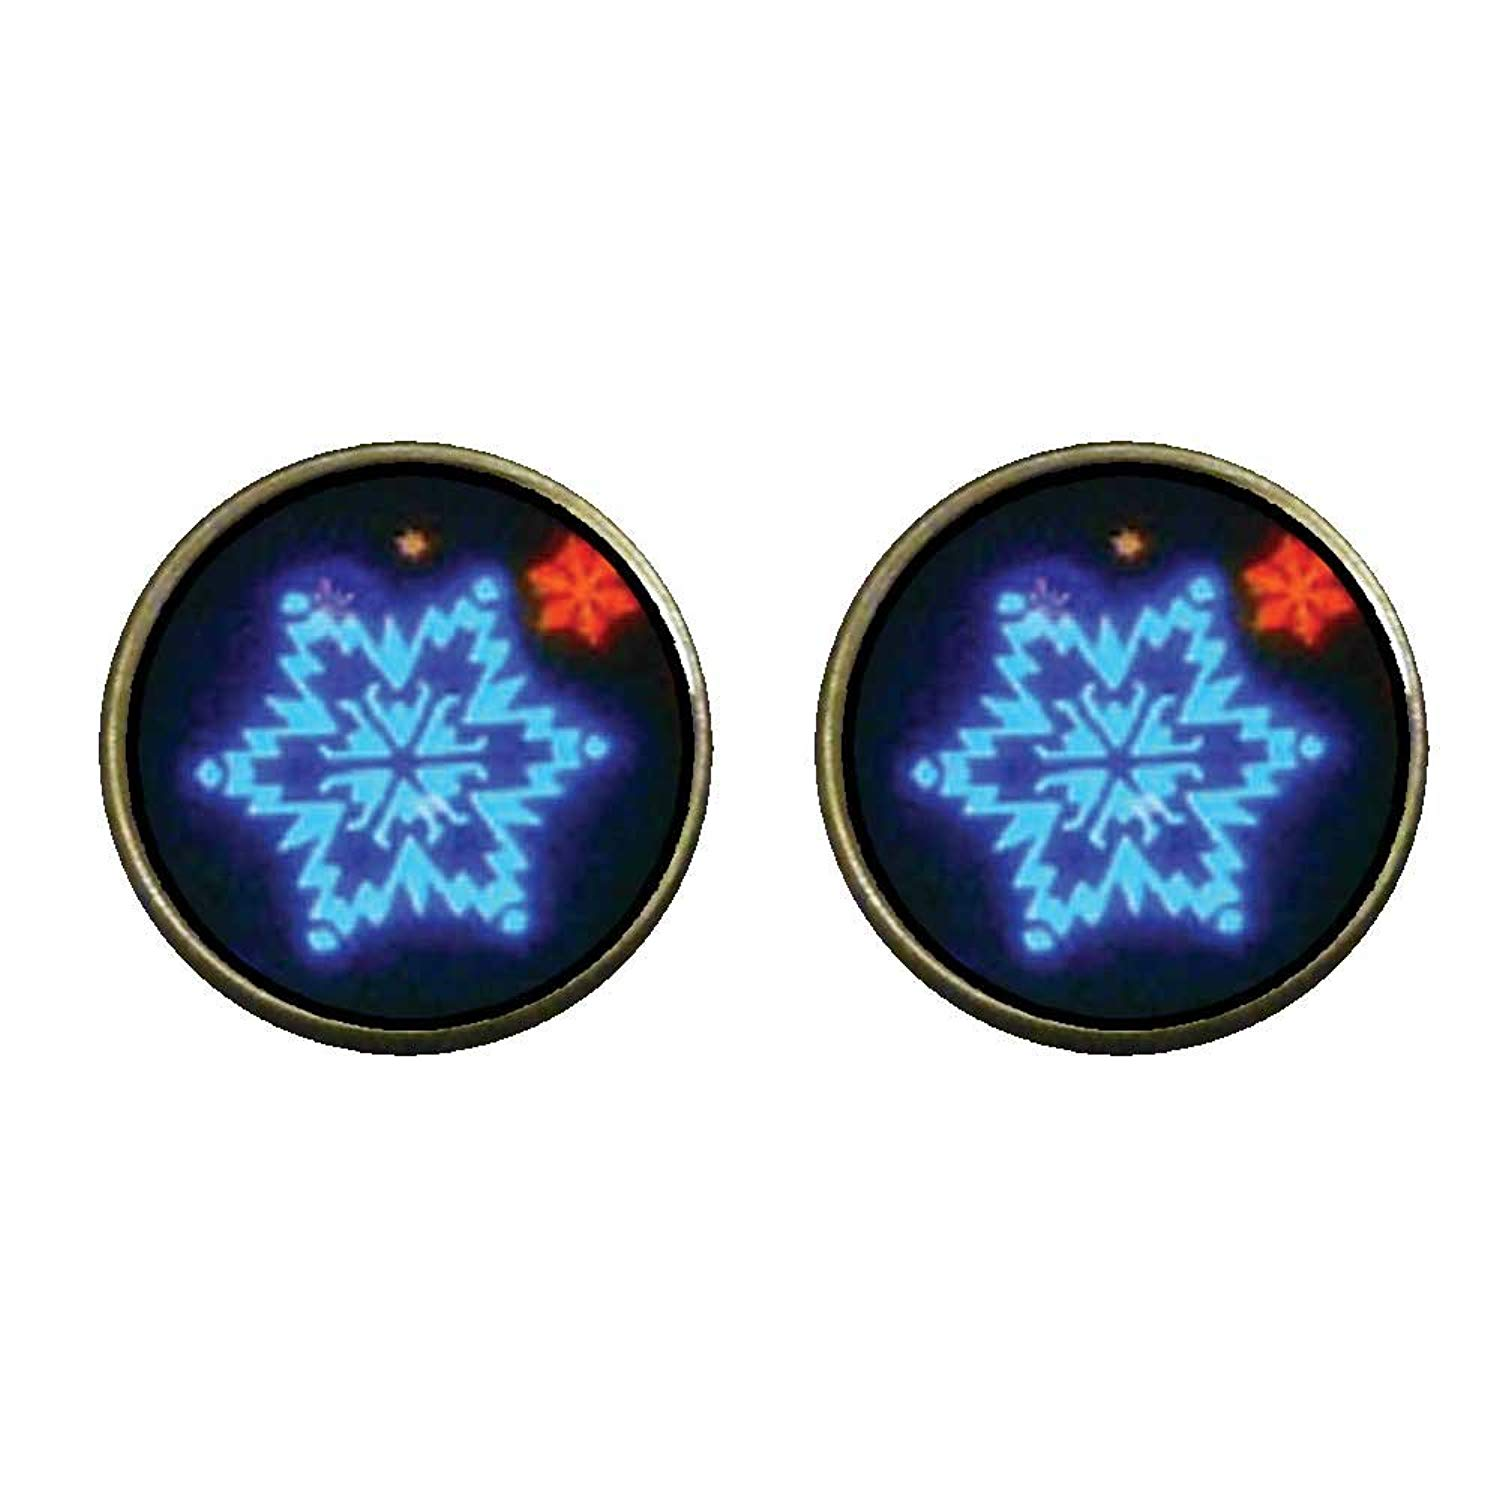 GiftJewelryShop Bronze Retro Style Neon Snow Flakes Photo Clip On Earrings 14mm Diameter